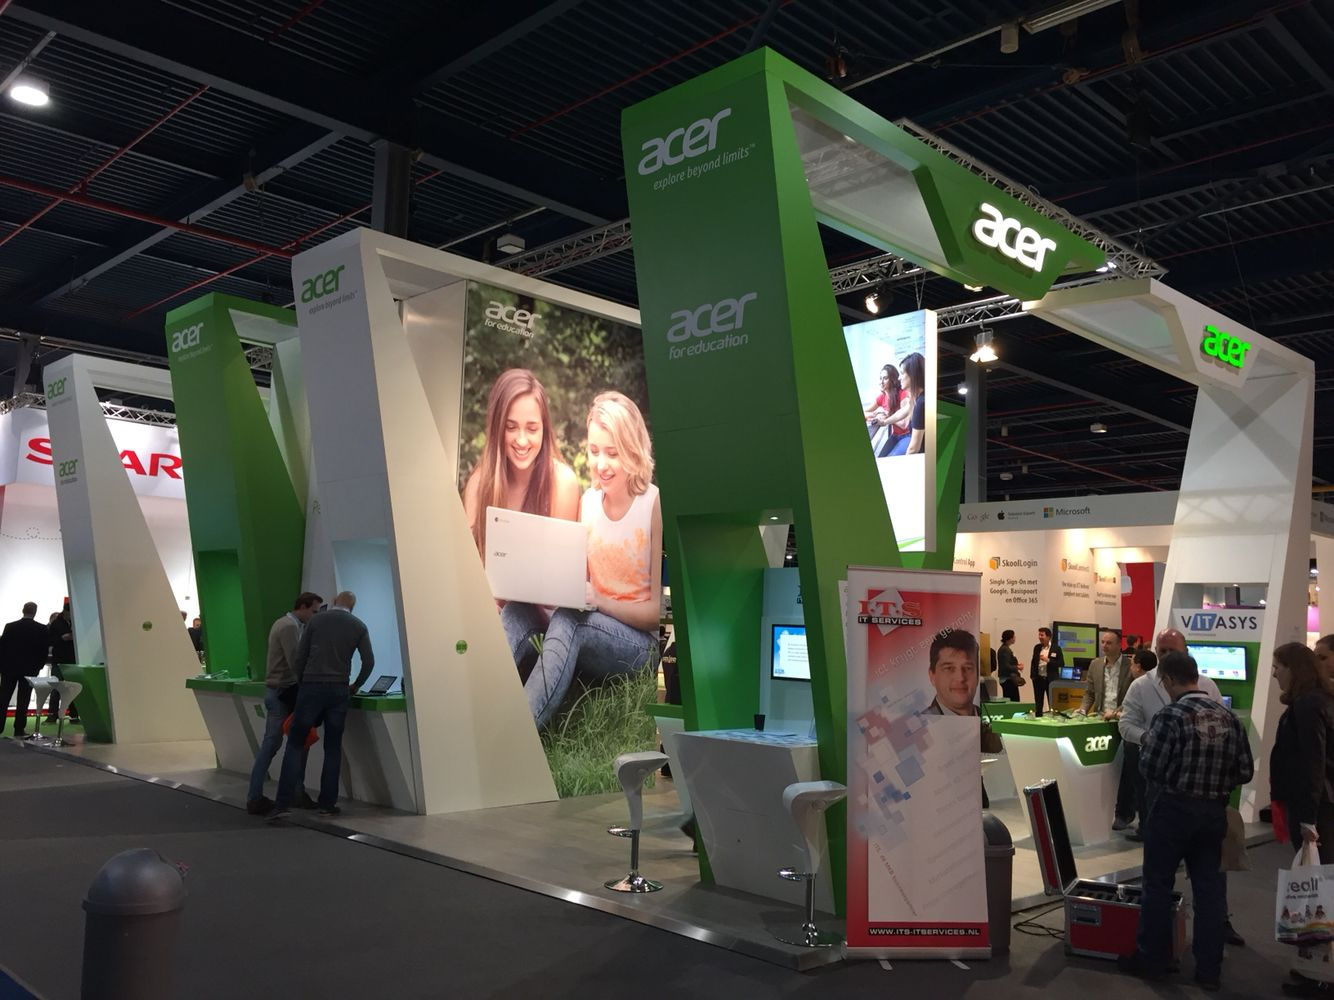 Exhibition Stand Floor : The use of lines and levels help this booth stand out on